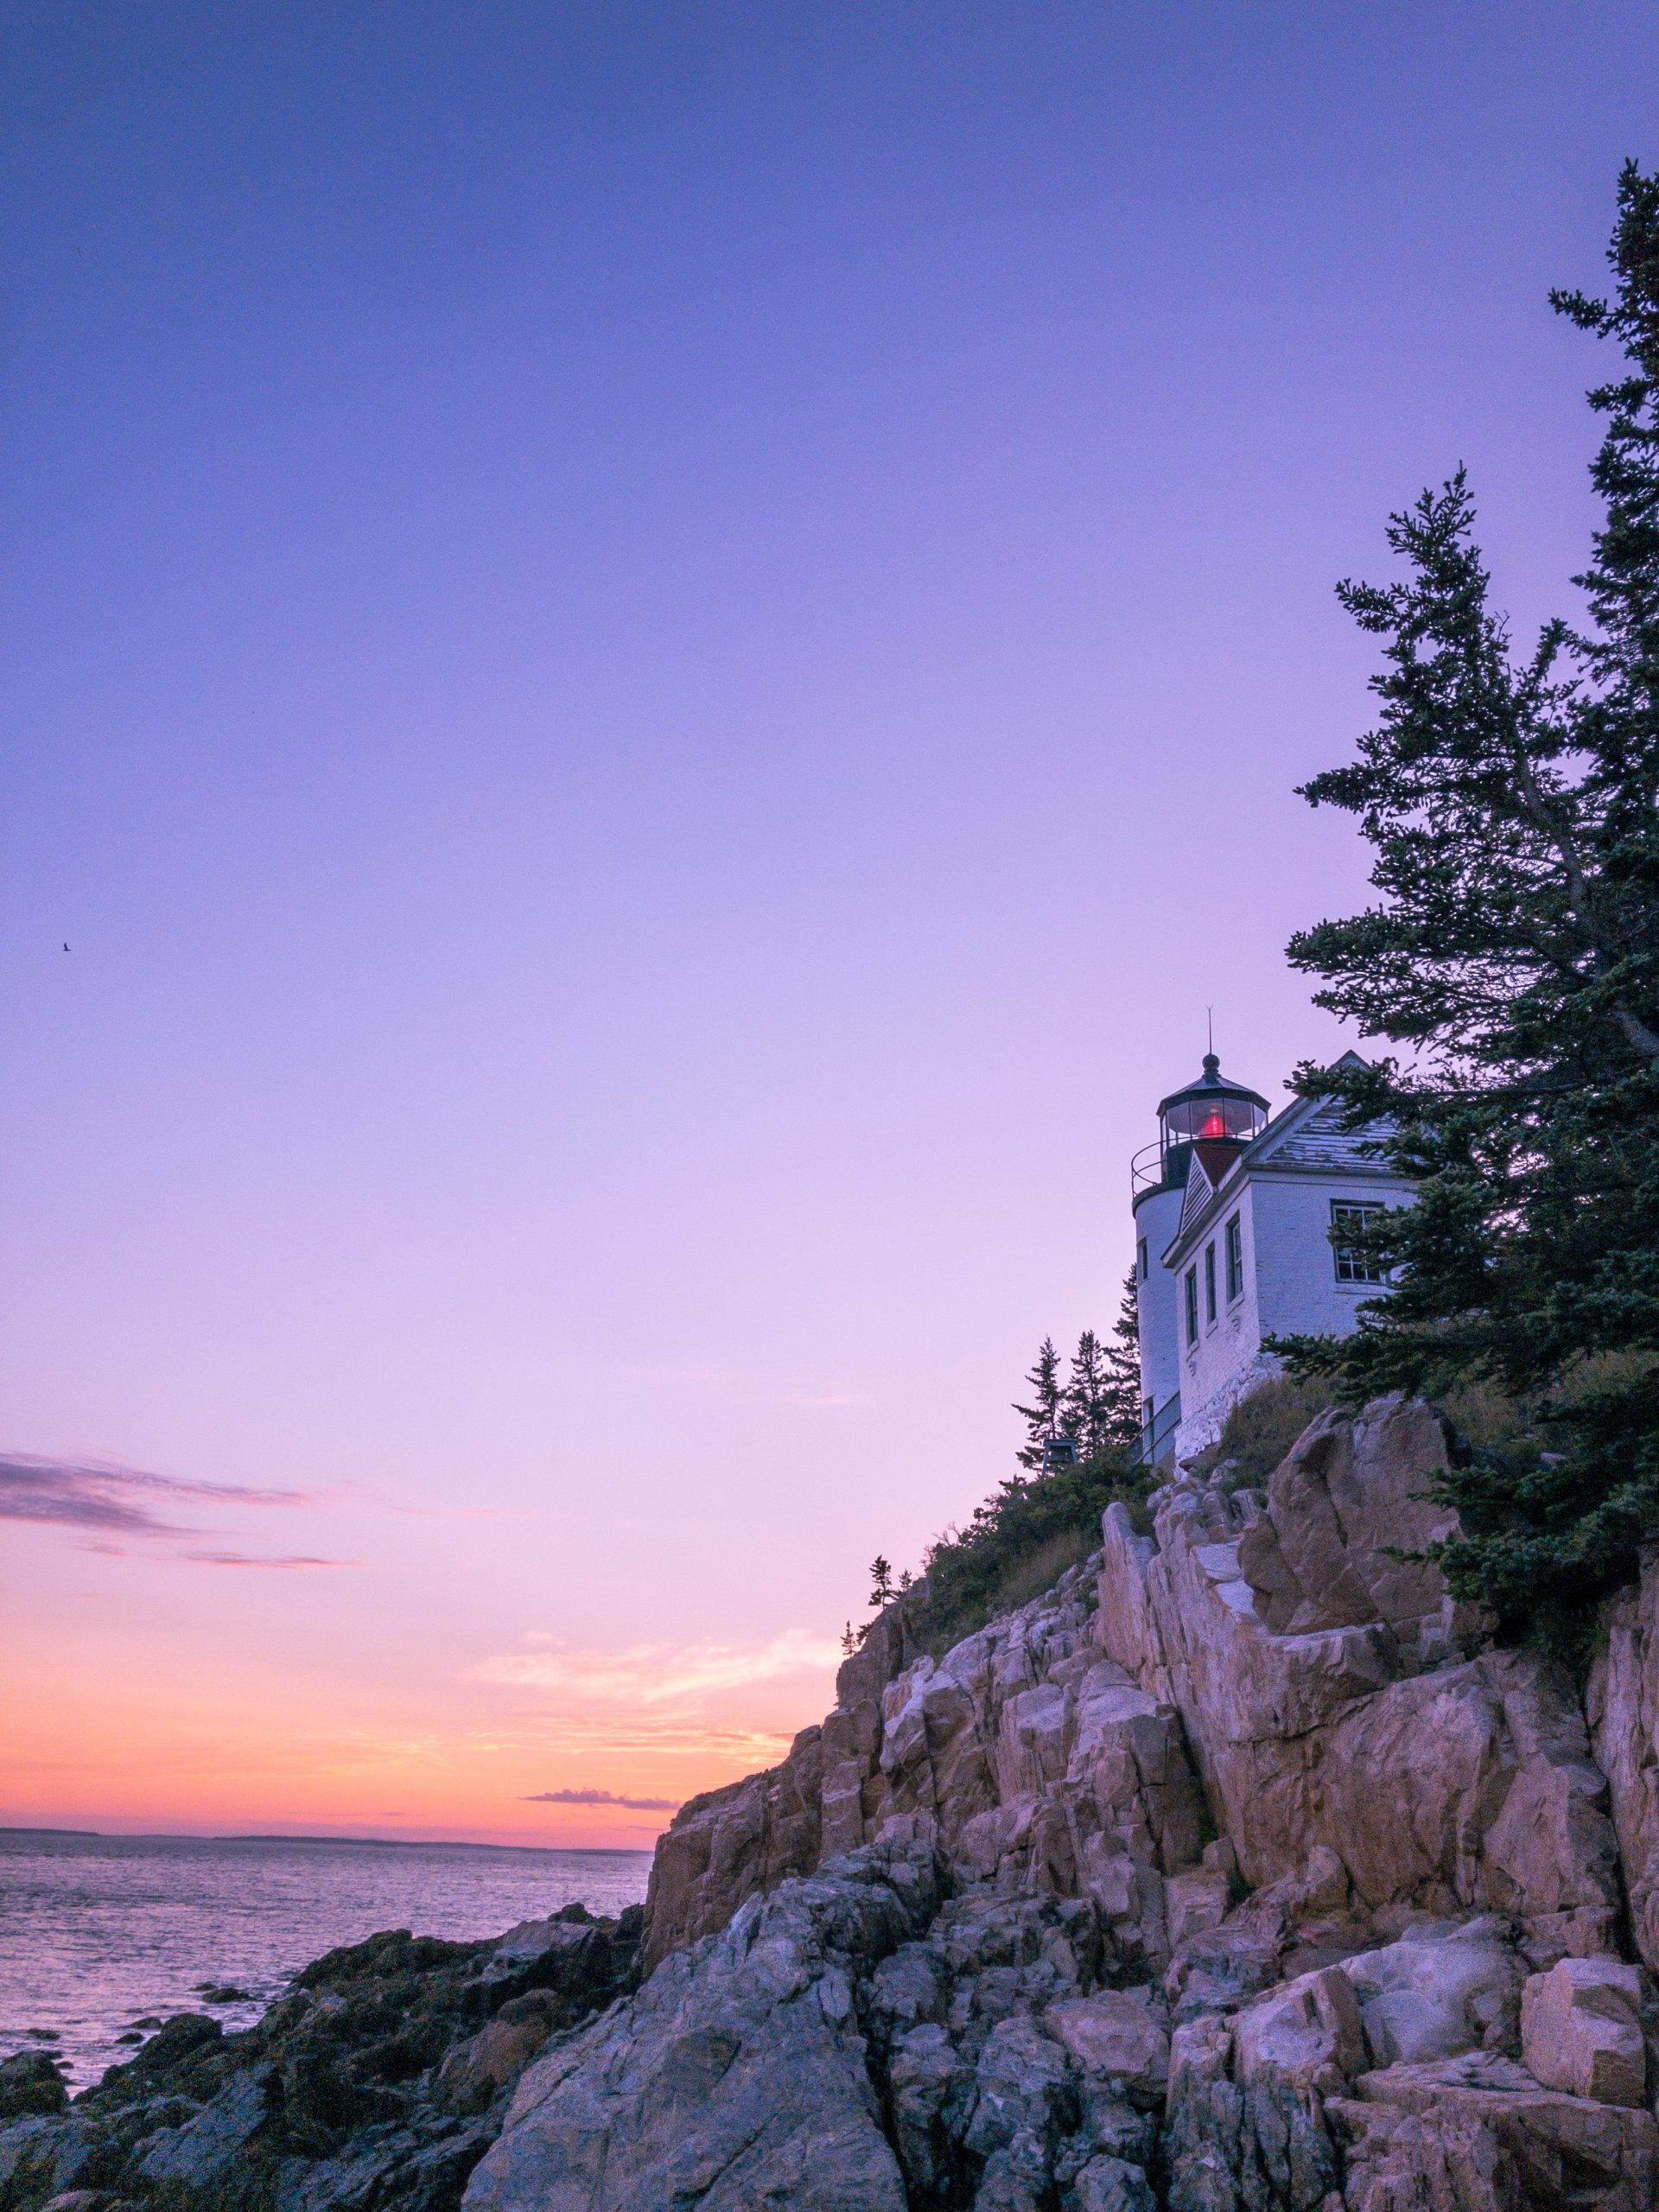 Sunset with lighthouse at Acadia National Park